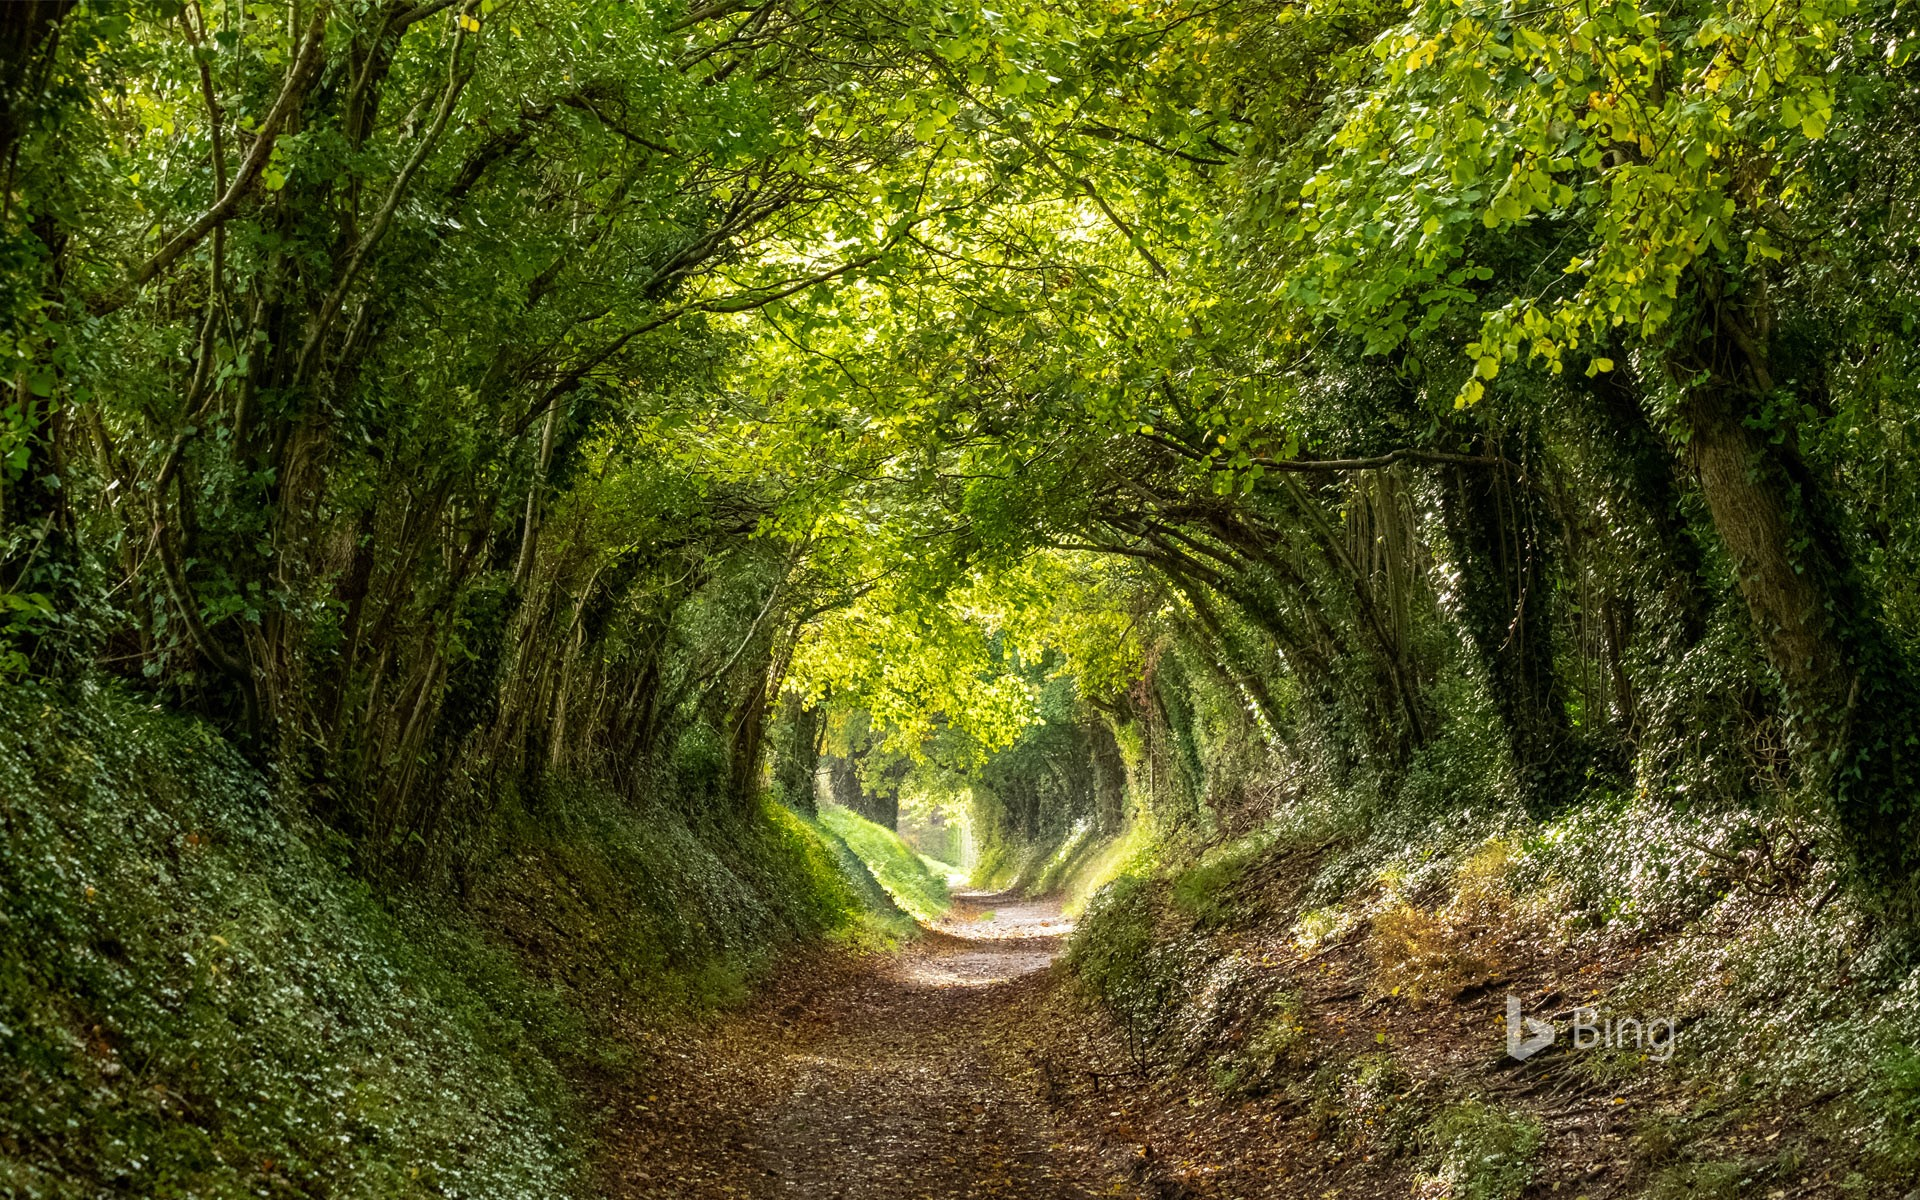 Halnaker tree tunnel near Chichester, West Sussex